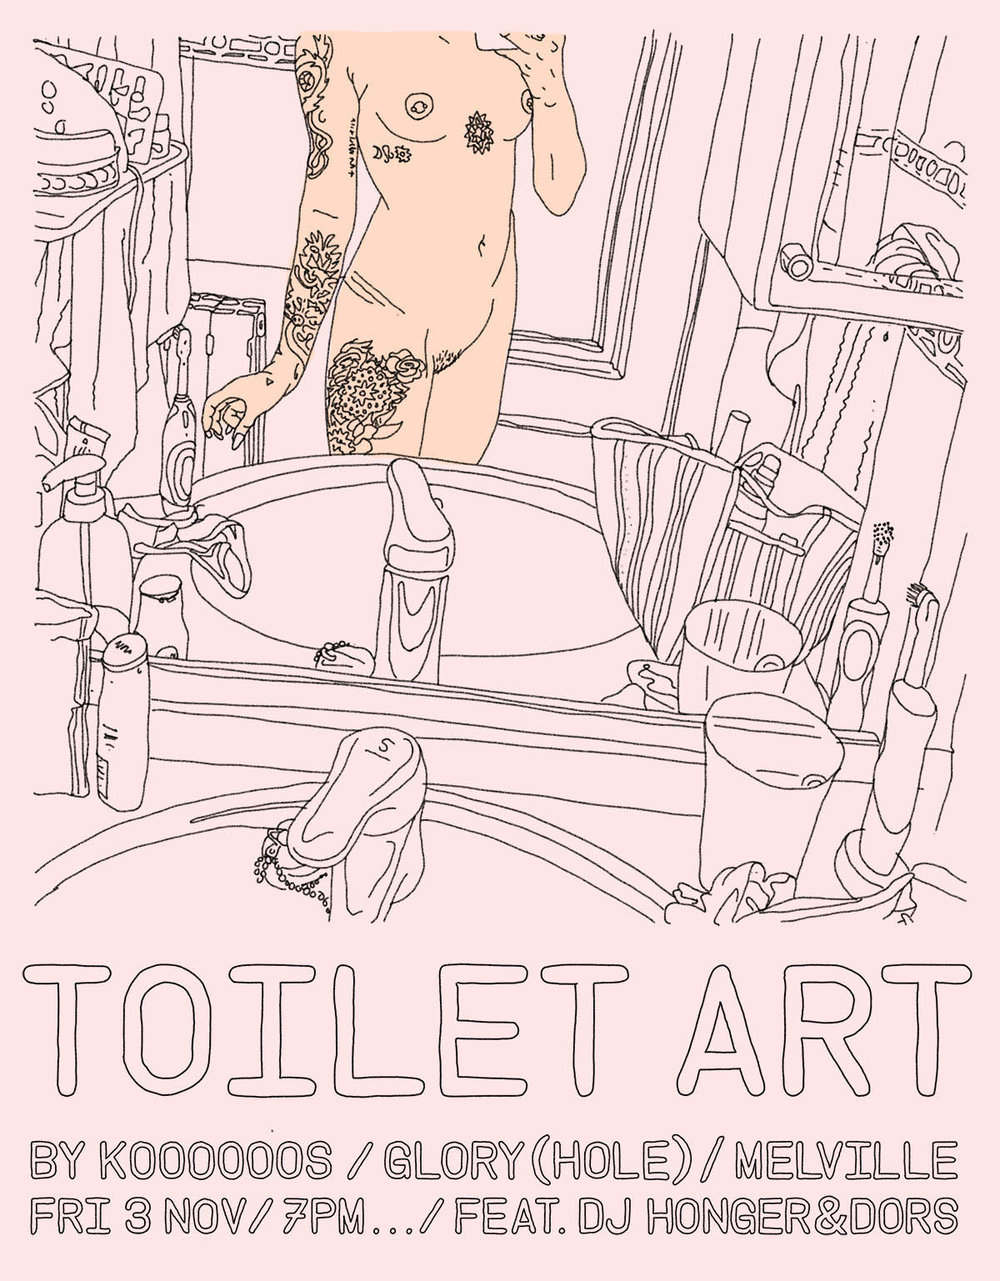 TOILET-ART-INVITE-2b.jpg